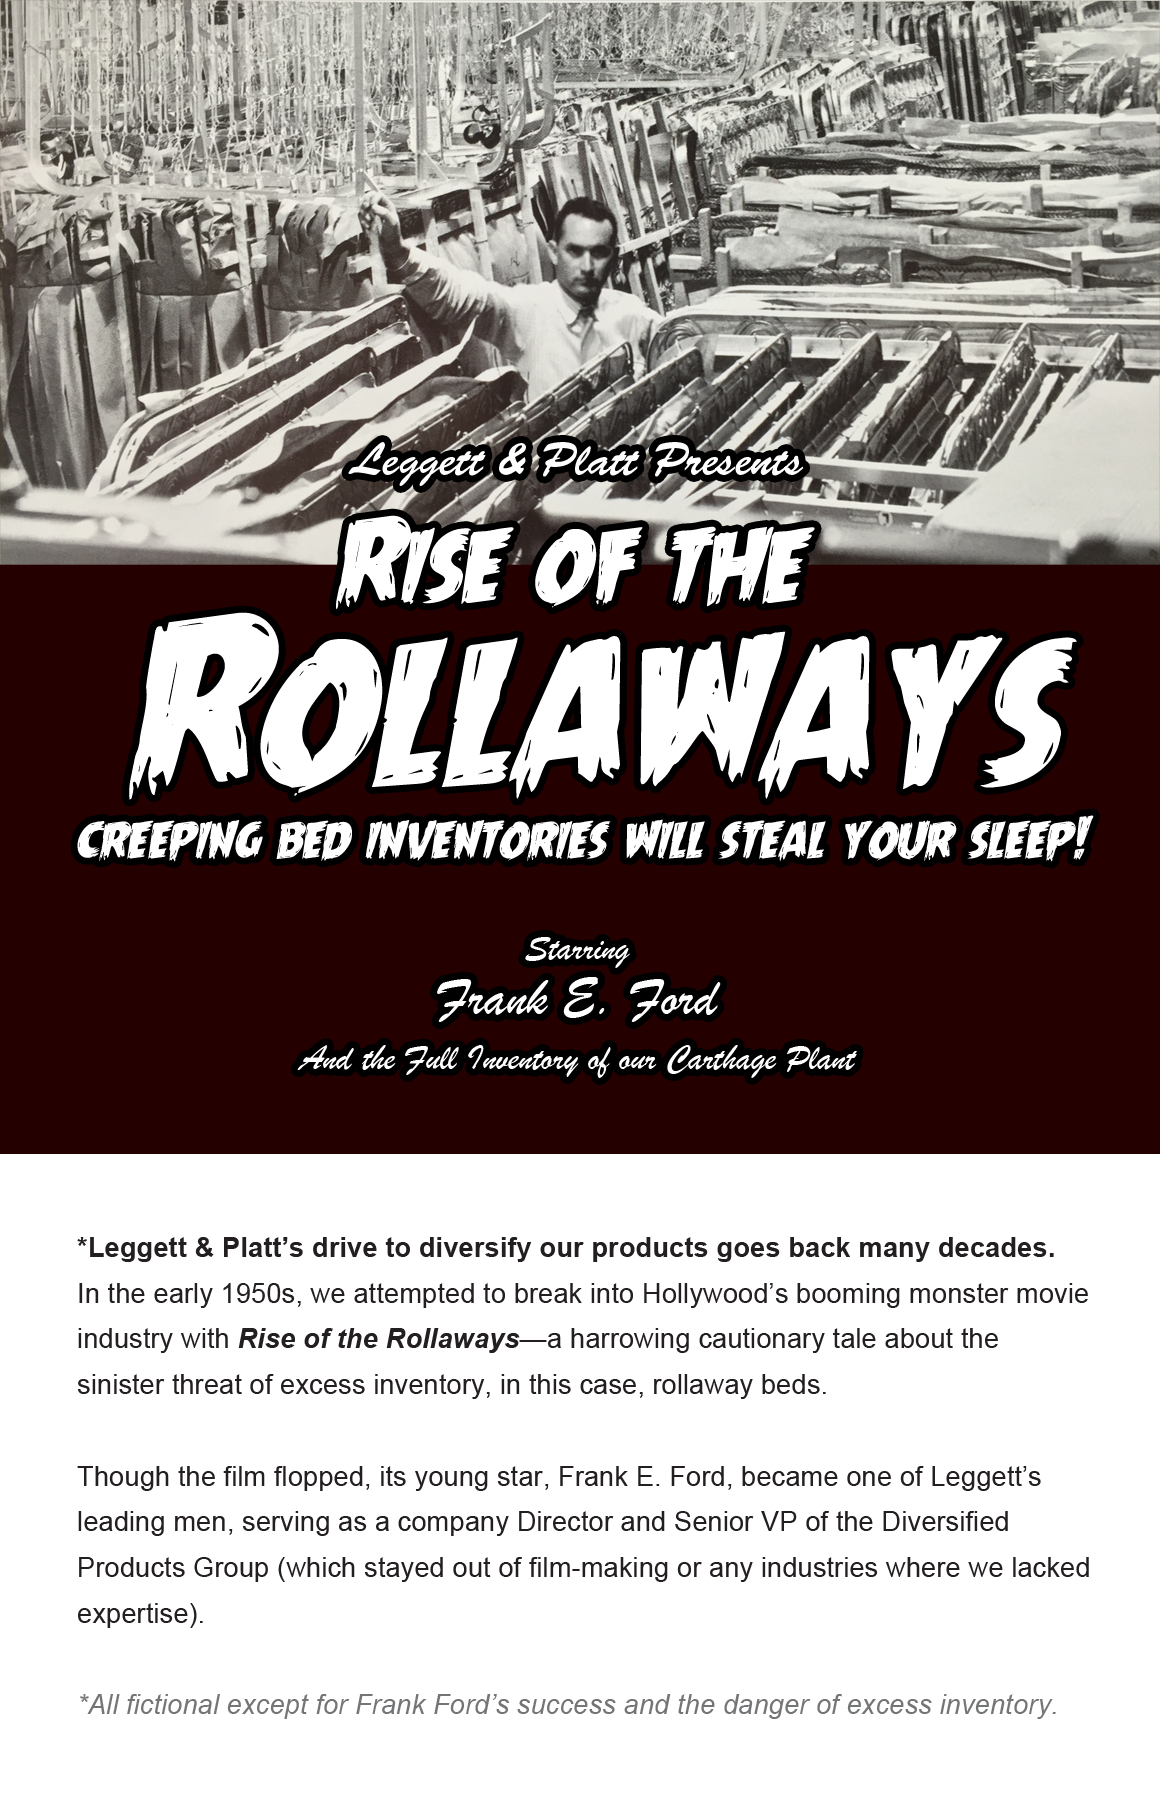 Rise of the Rollaways